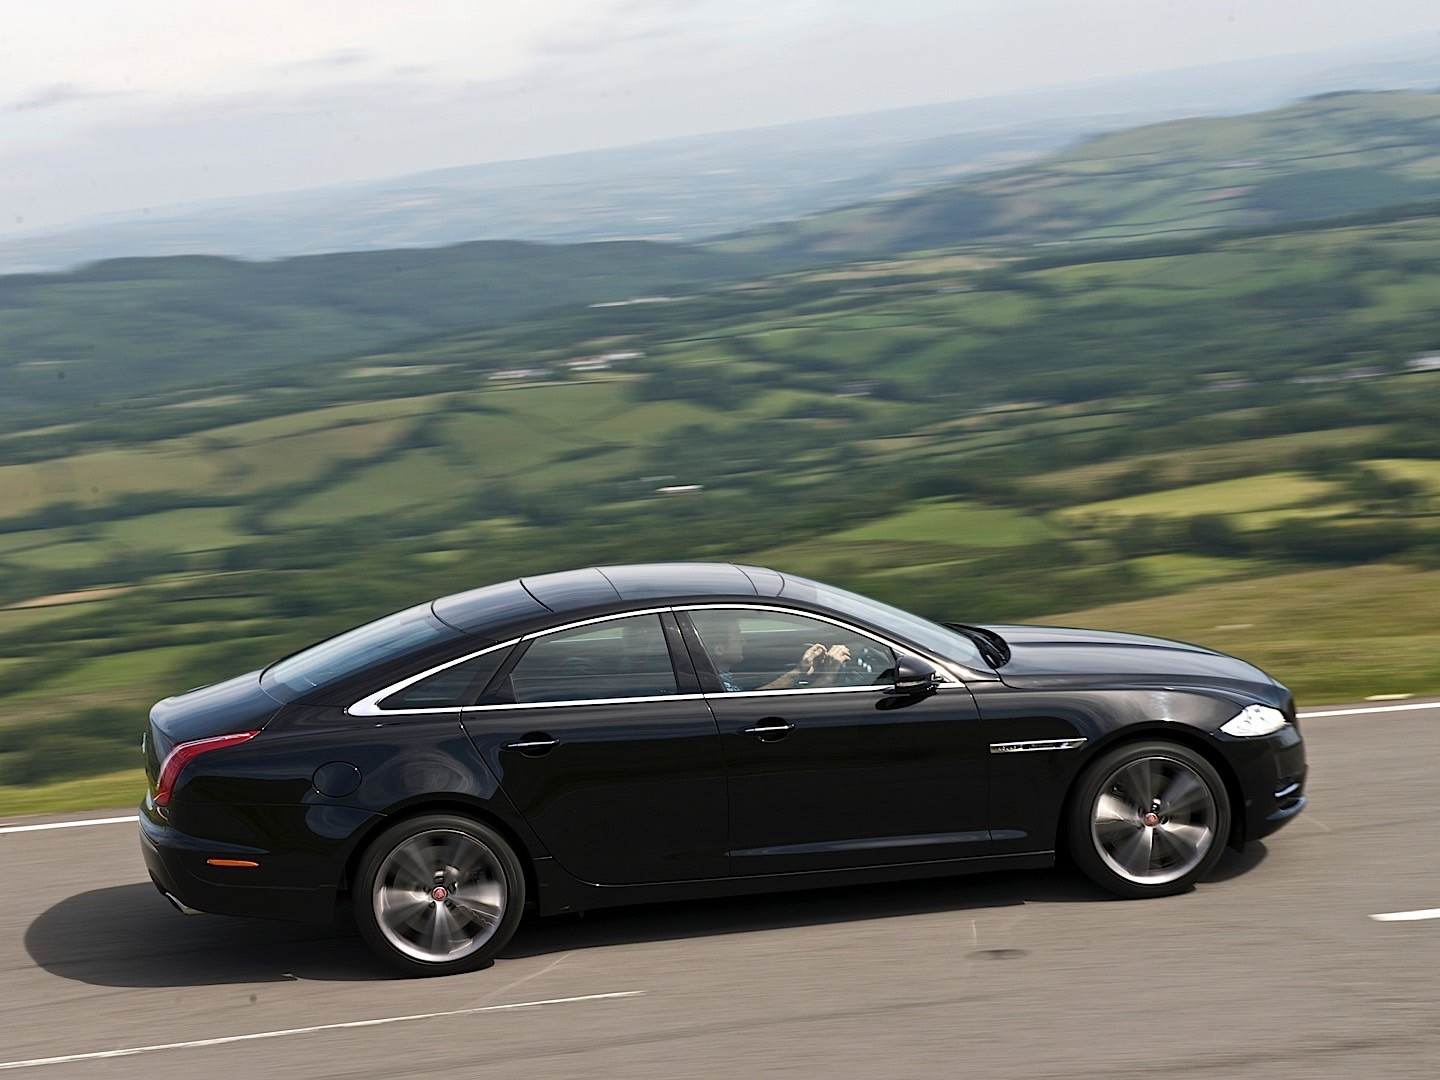 Jaguar has announced details of its 2013 model year generation XJ It